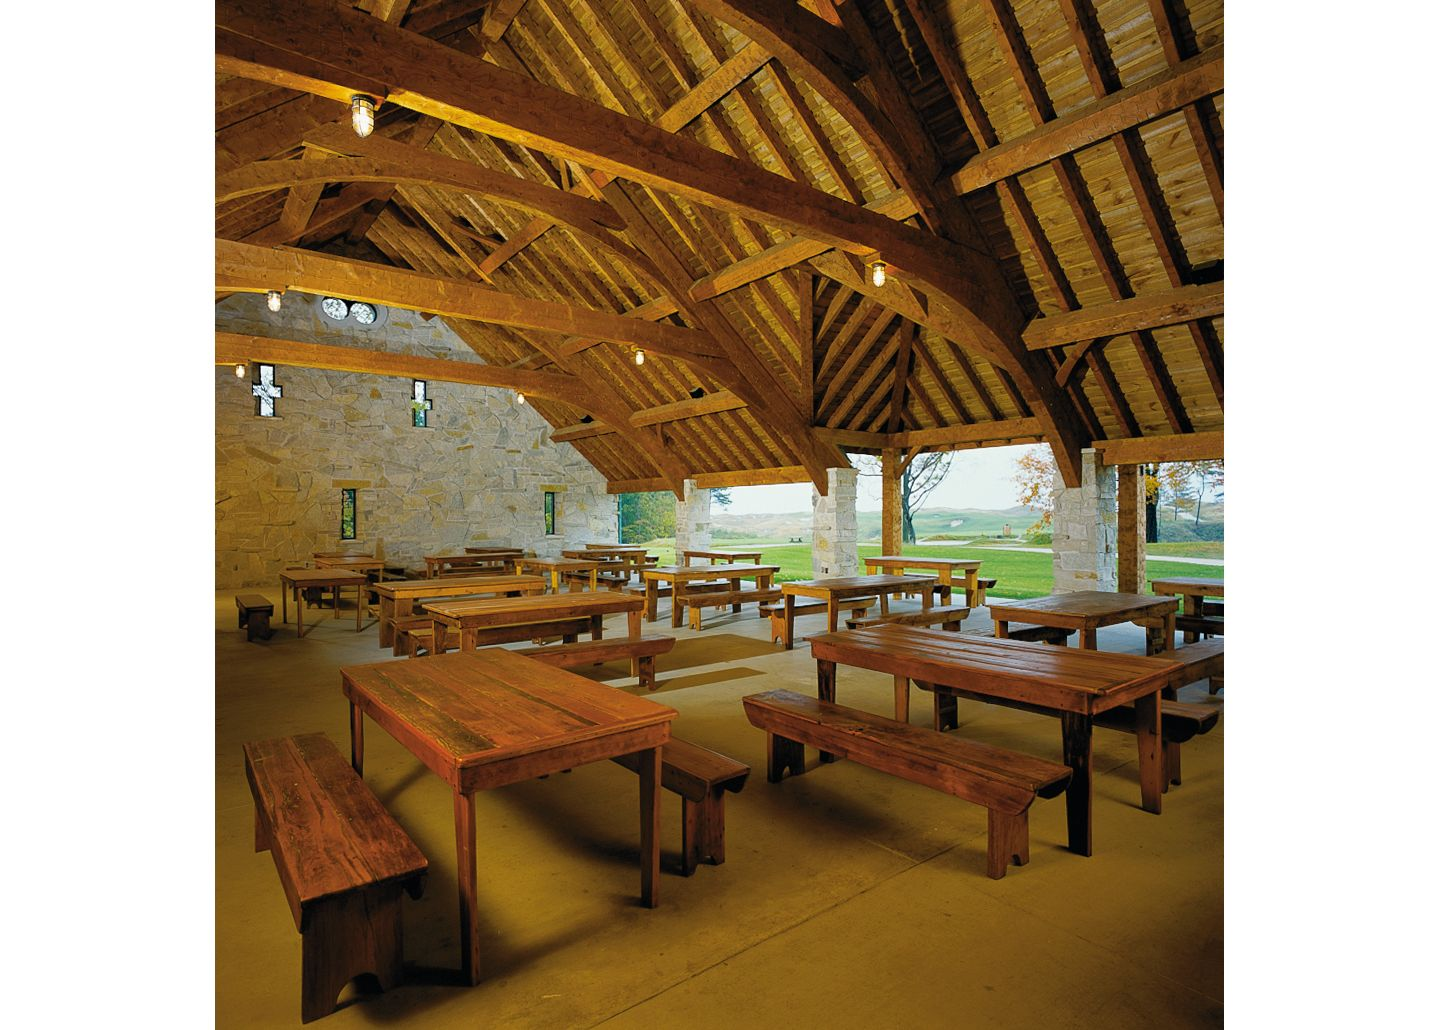 Tables in the Irish Barn without place settings.